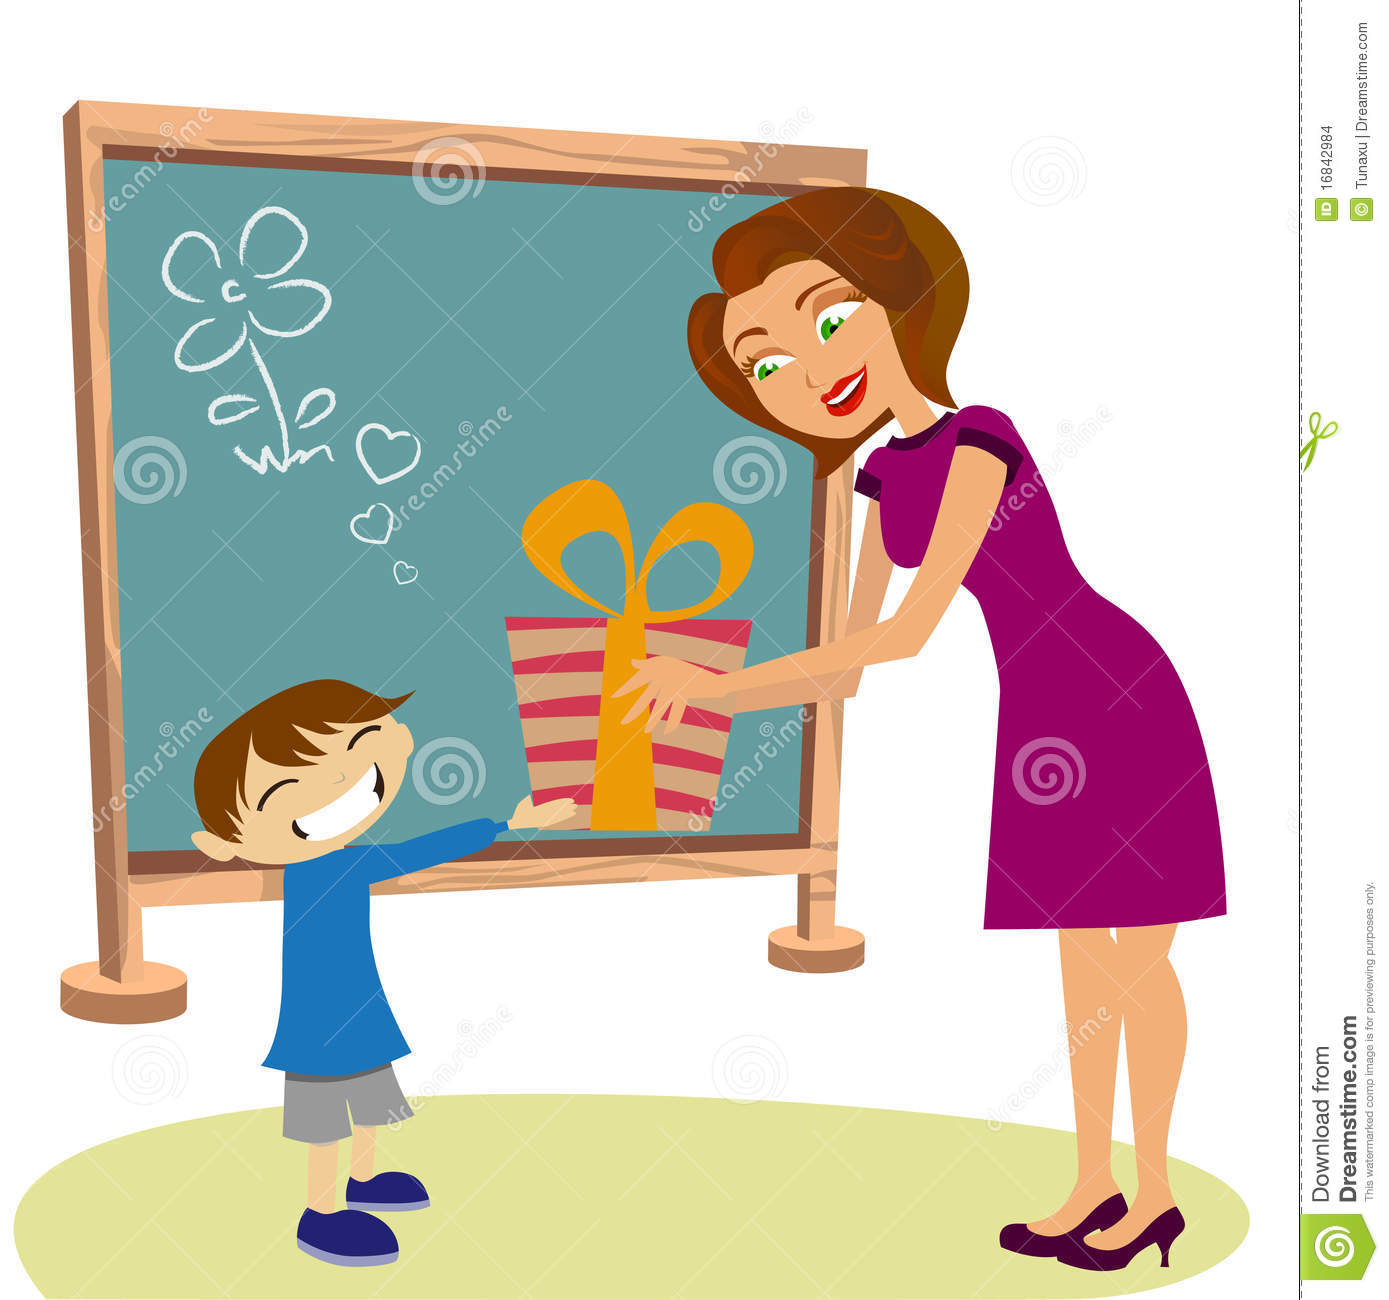 Student Giving Gift Her Teacher Stock Images - Image: 16842984